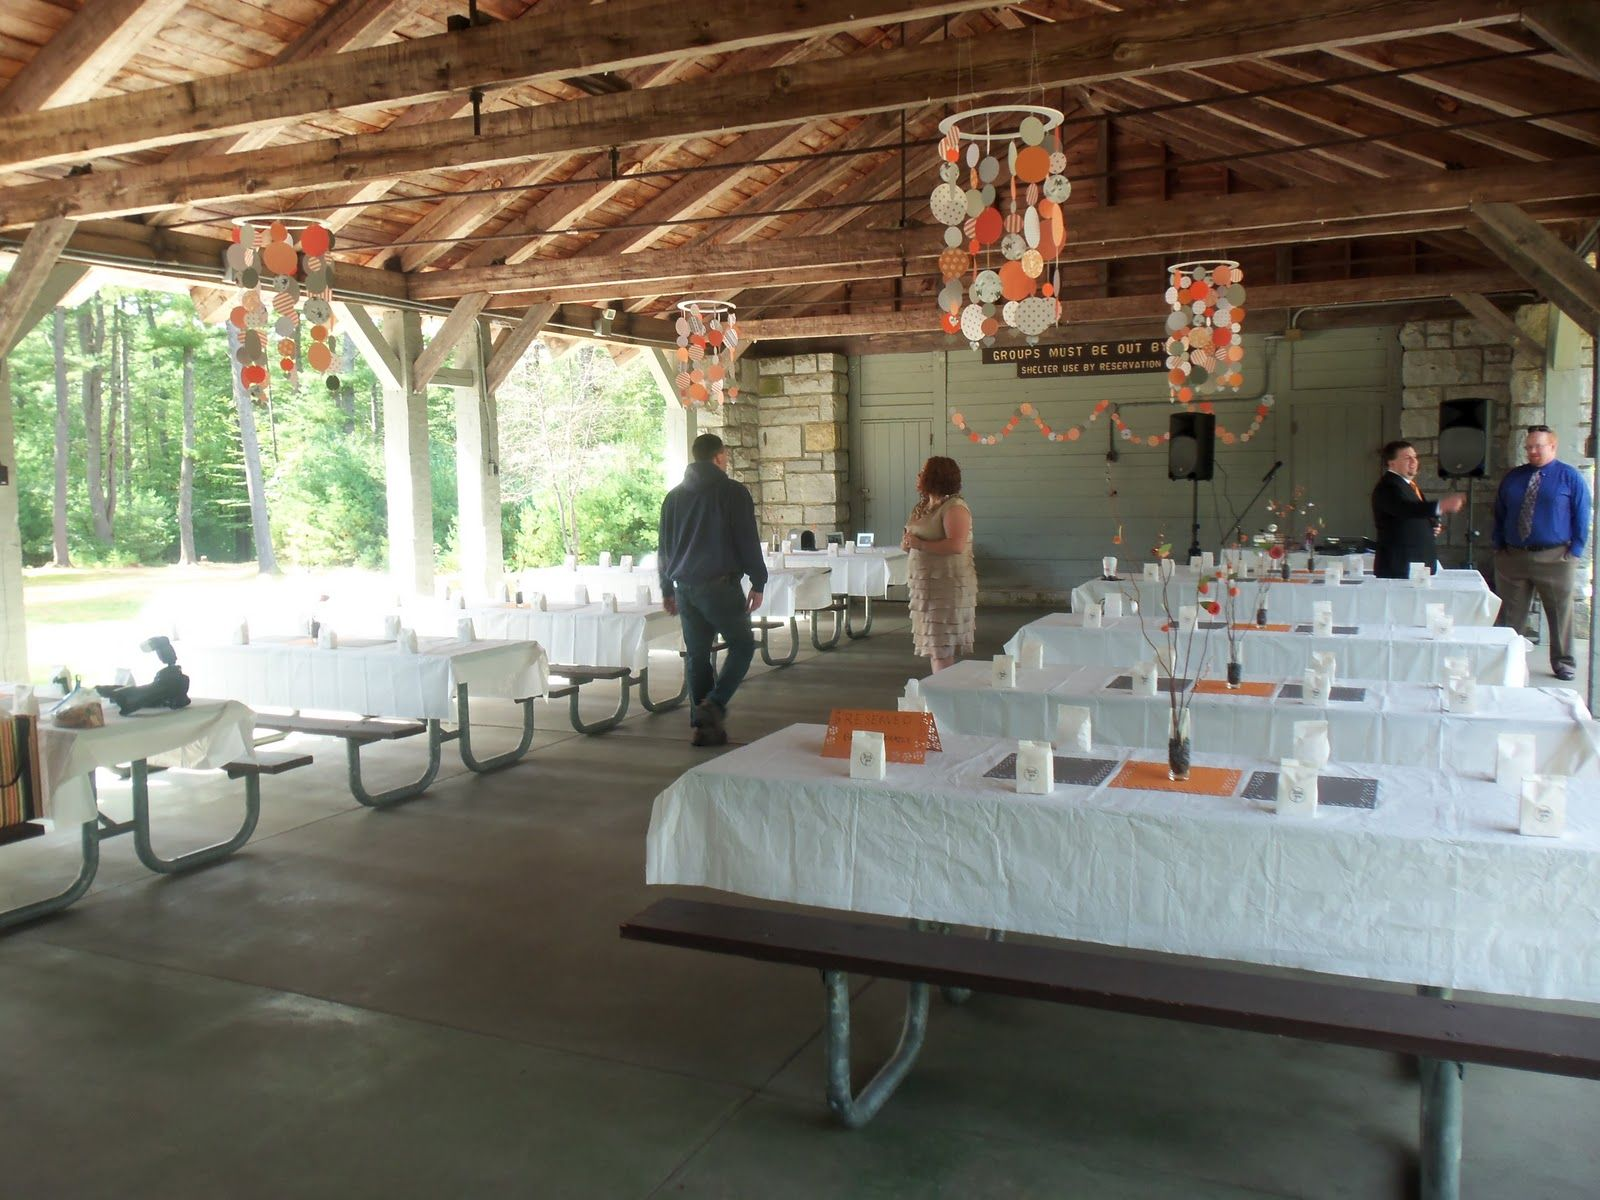 Outdoor Park Or Indoor Room For Wedding Ceremony: Decorating A Pavilion For A Wedding Reception